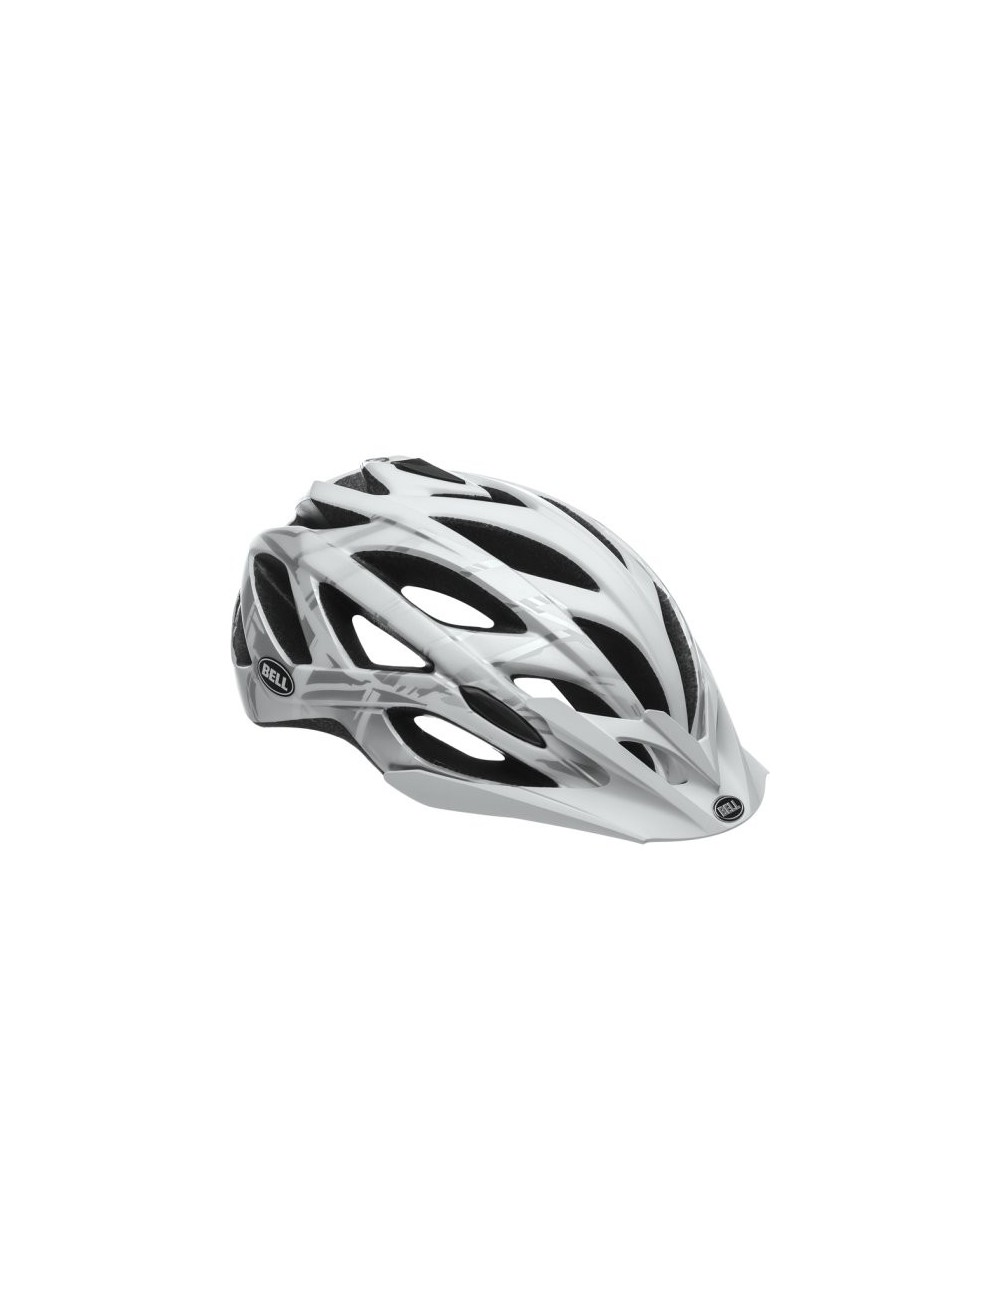 CAPACETE BELL SEQUENCE BRANCO/CINZA BURNOUT